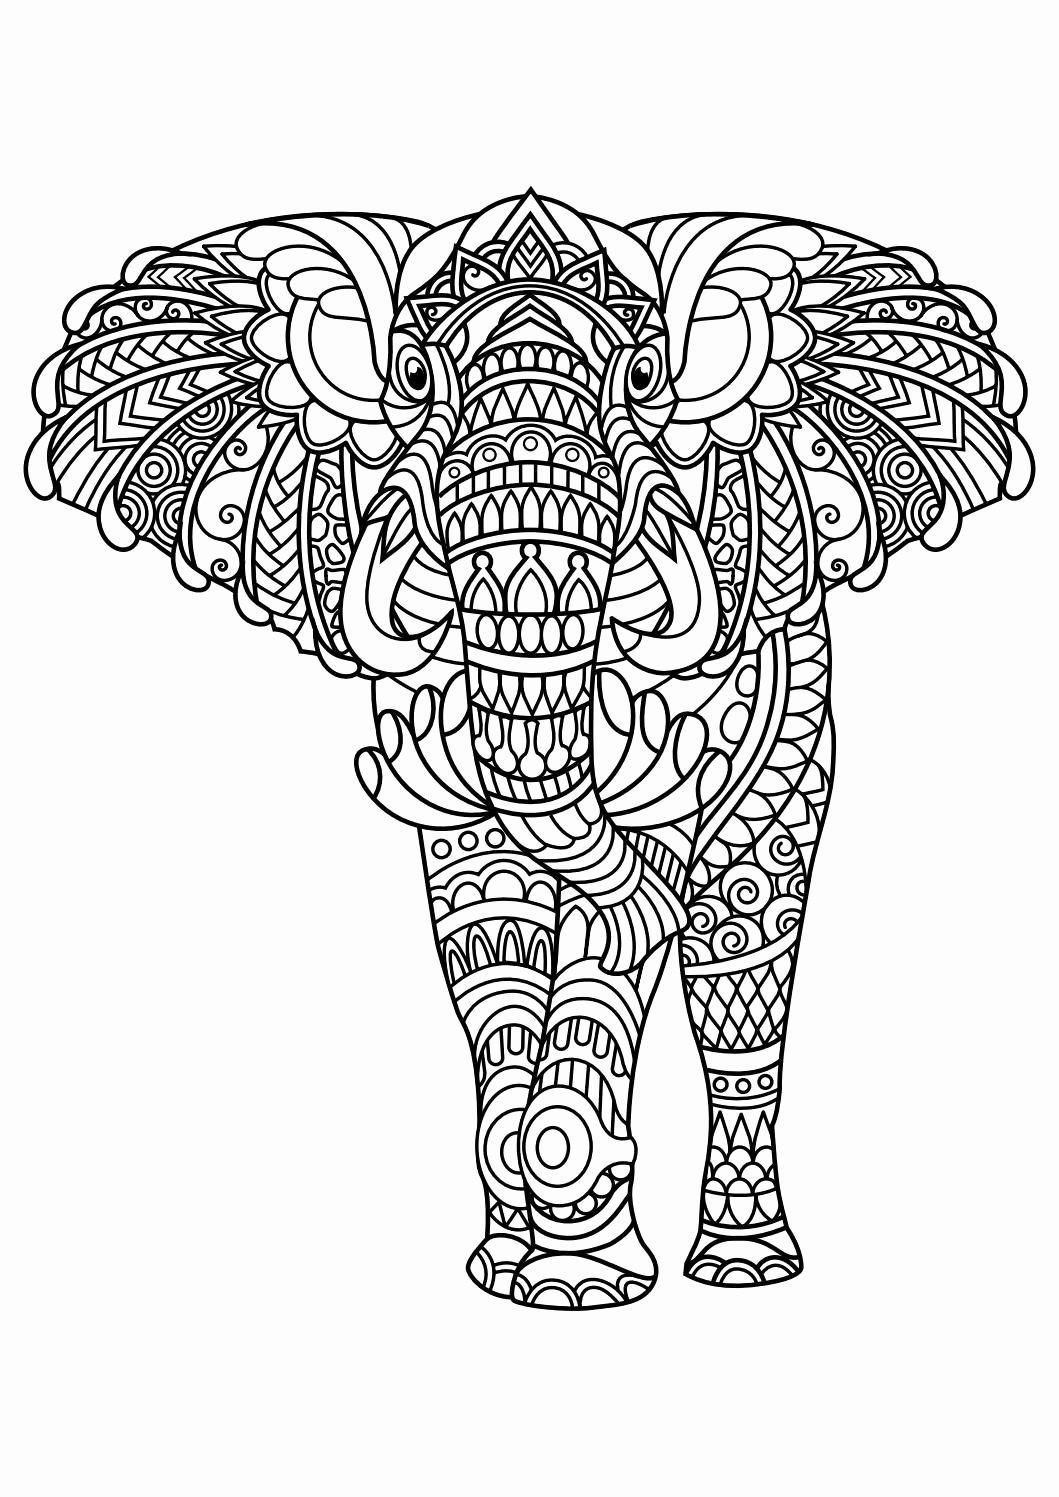 Coloring Animal Ocean New Pdf Coloring Pages Animal Album Sabadaphnecottage In 2020 Elephant Coloring Page Animal Coloring Books Dog Coloring Page